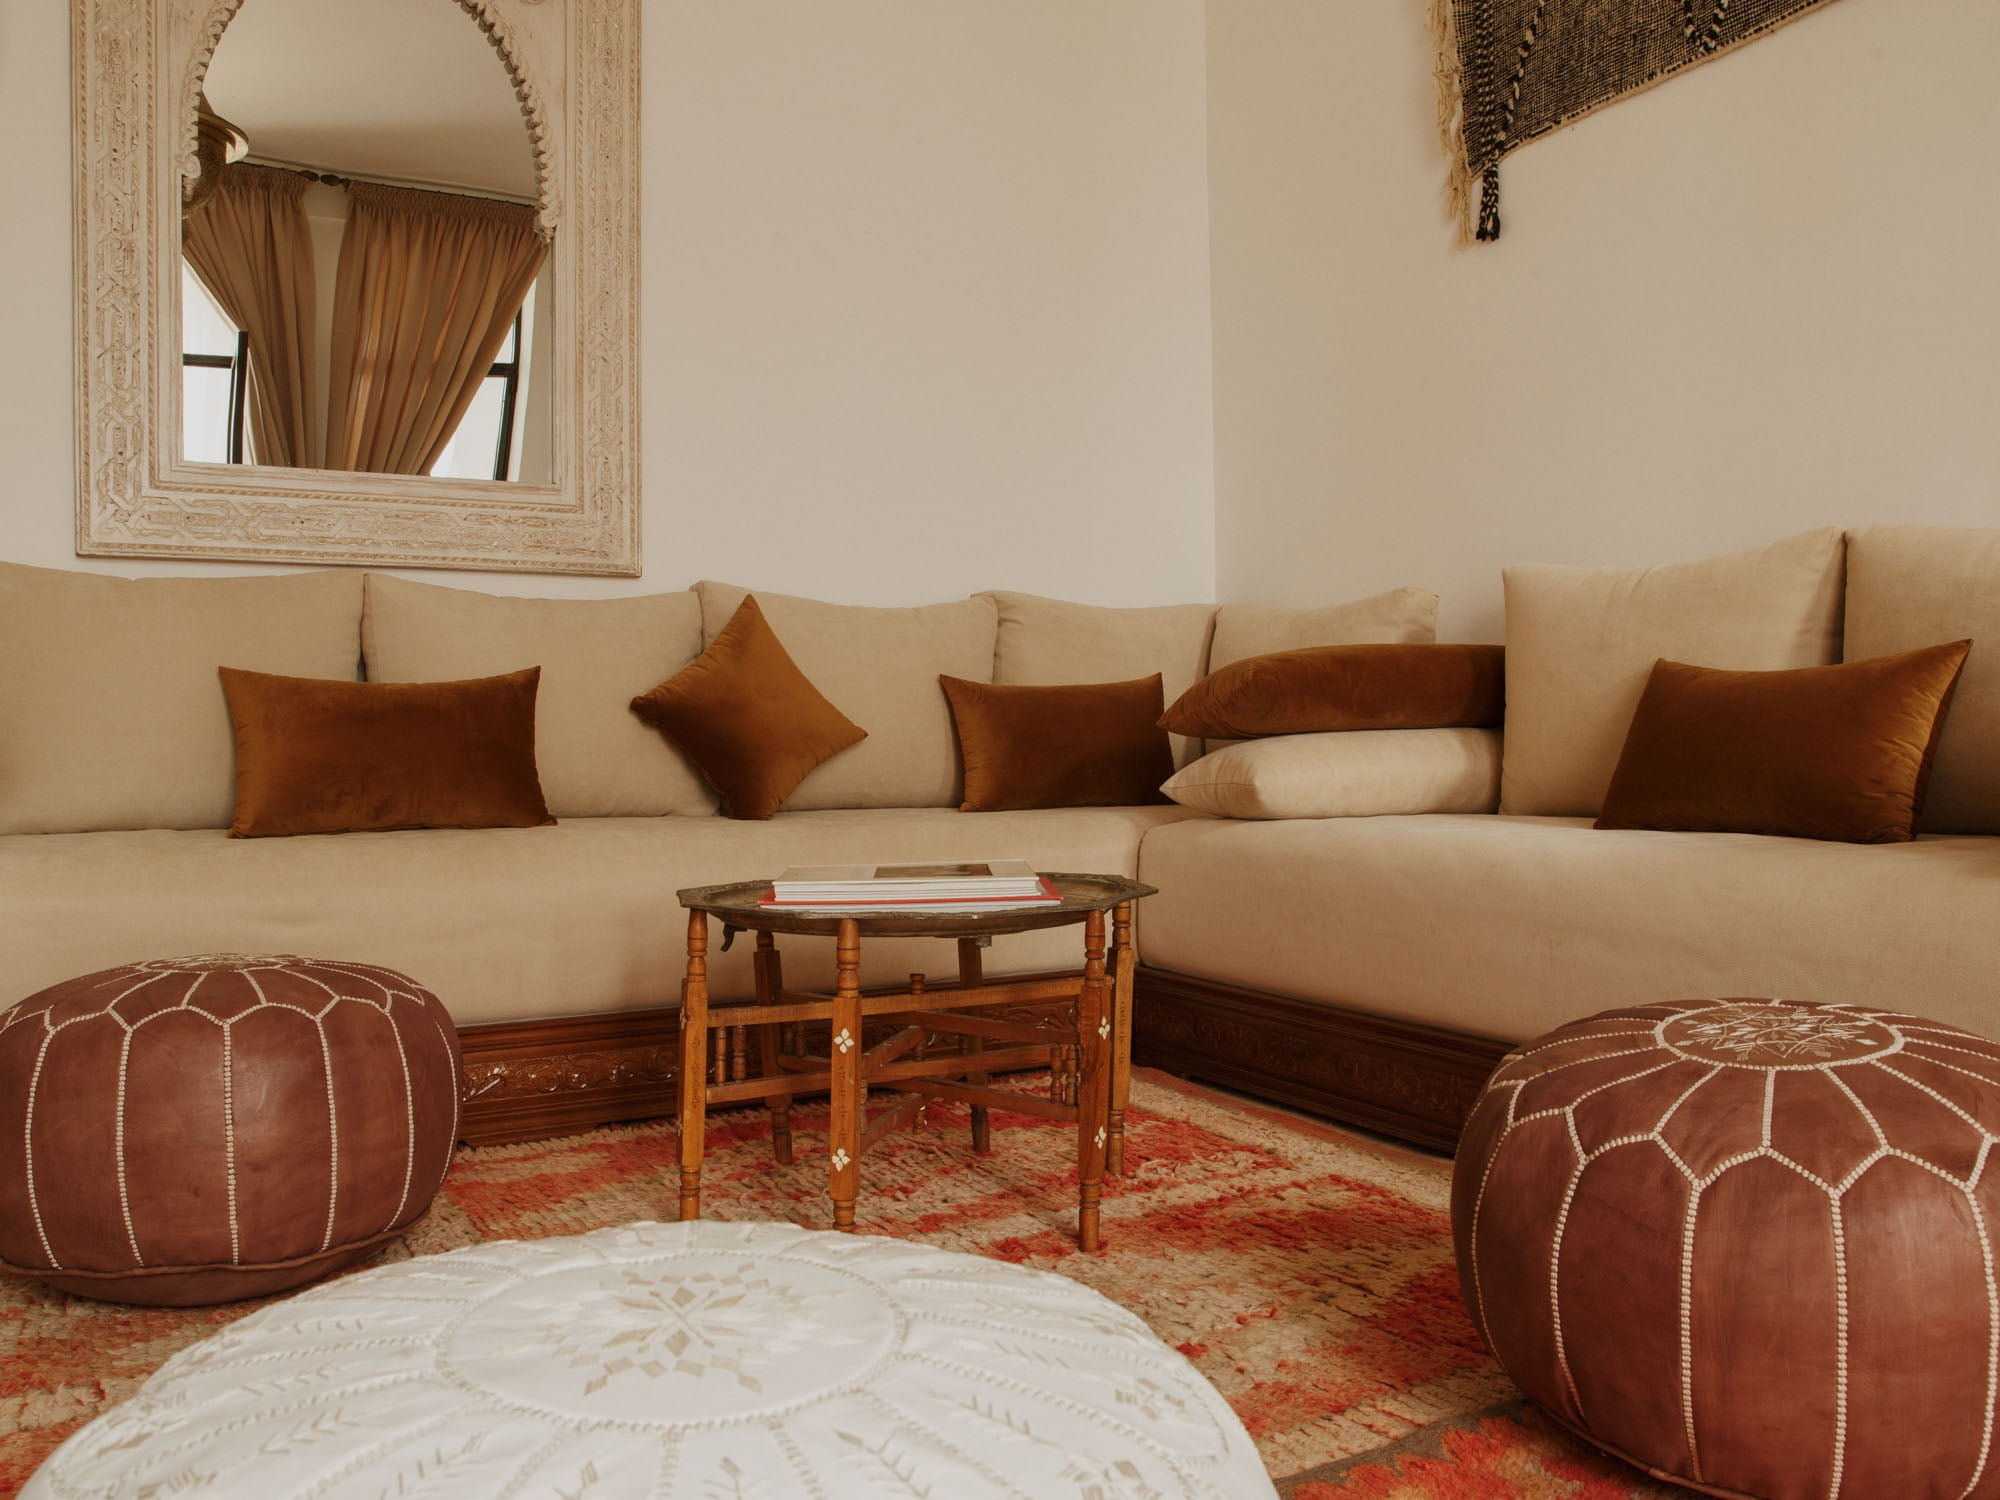 Hotel Room with decorative Window Surround, Couch with Cushions, Moroccan Pouf's, Red and White Rug and Occasional table